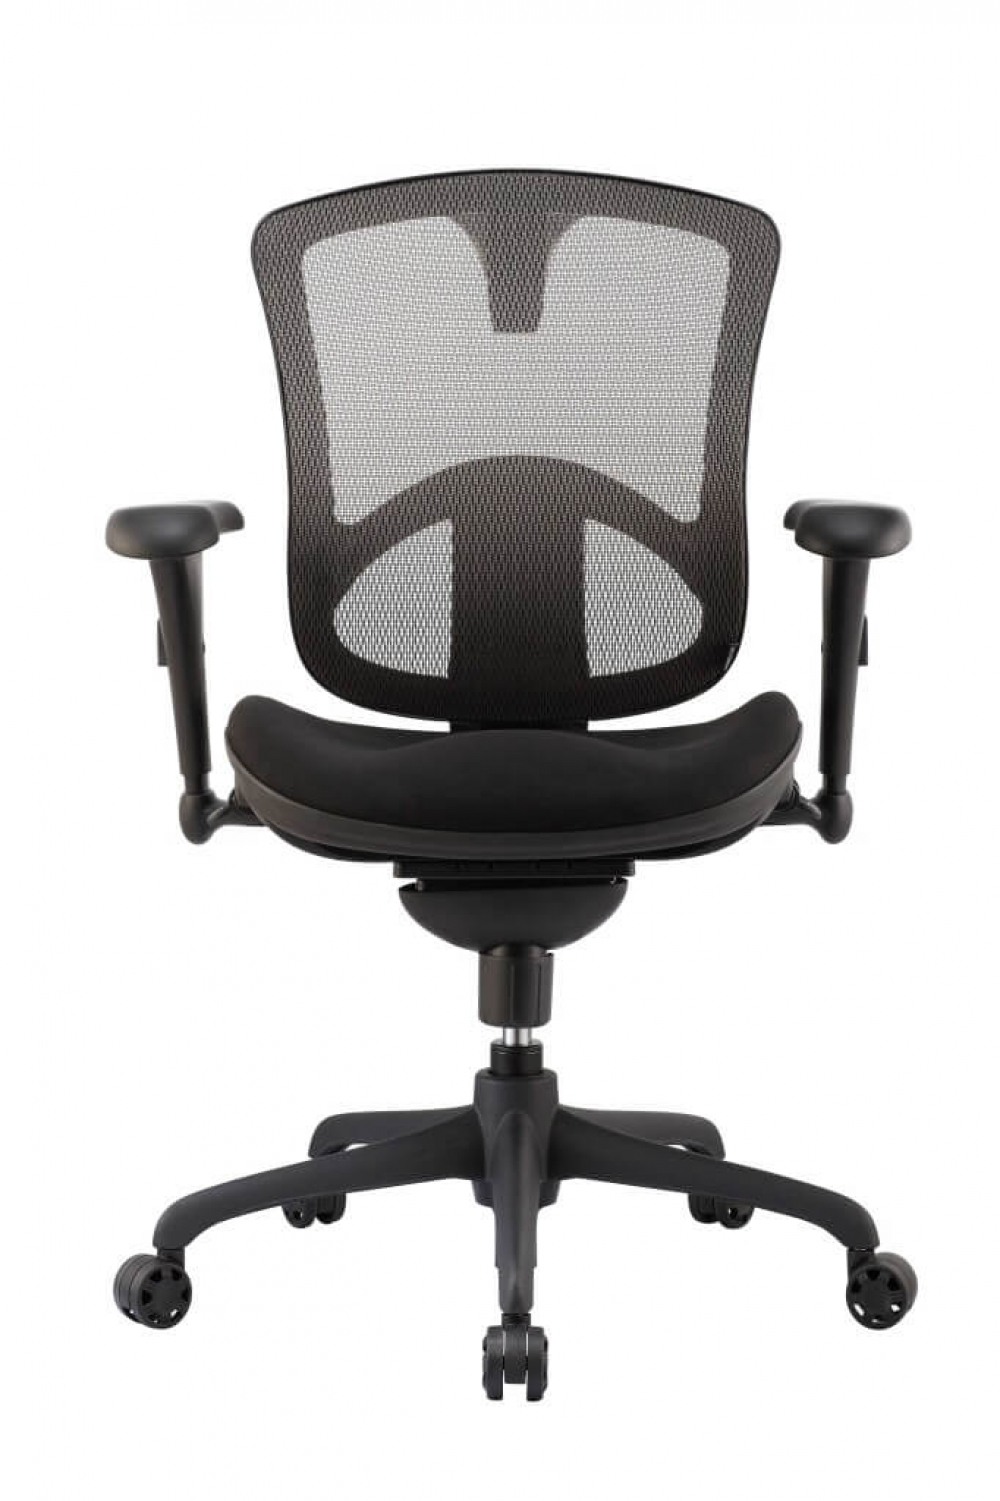 Black office chair front view